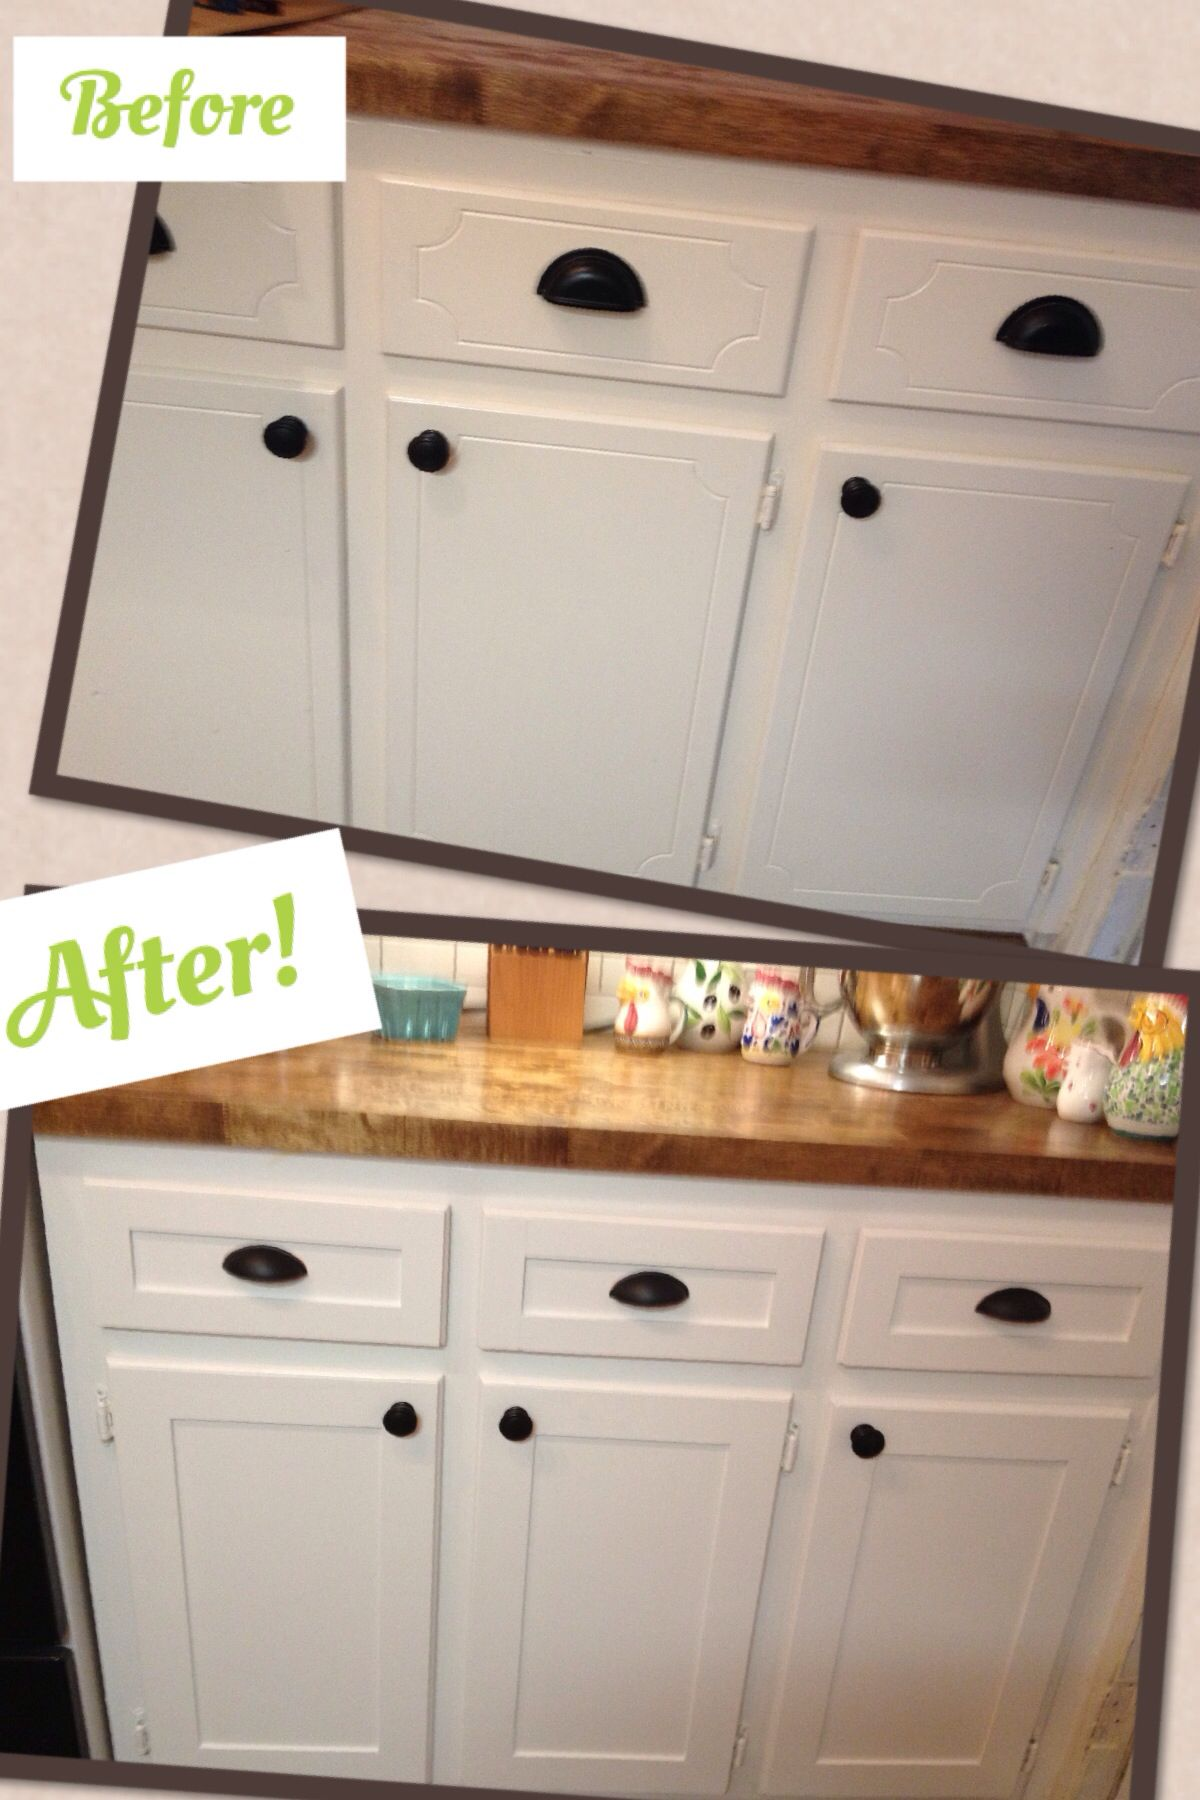 Superbe Kitchen Cabinet Refacing Project   DIY Shaker Trim   Done! Before And After